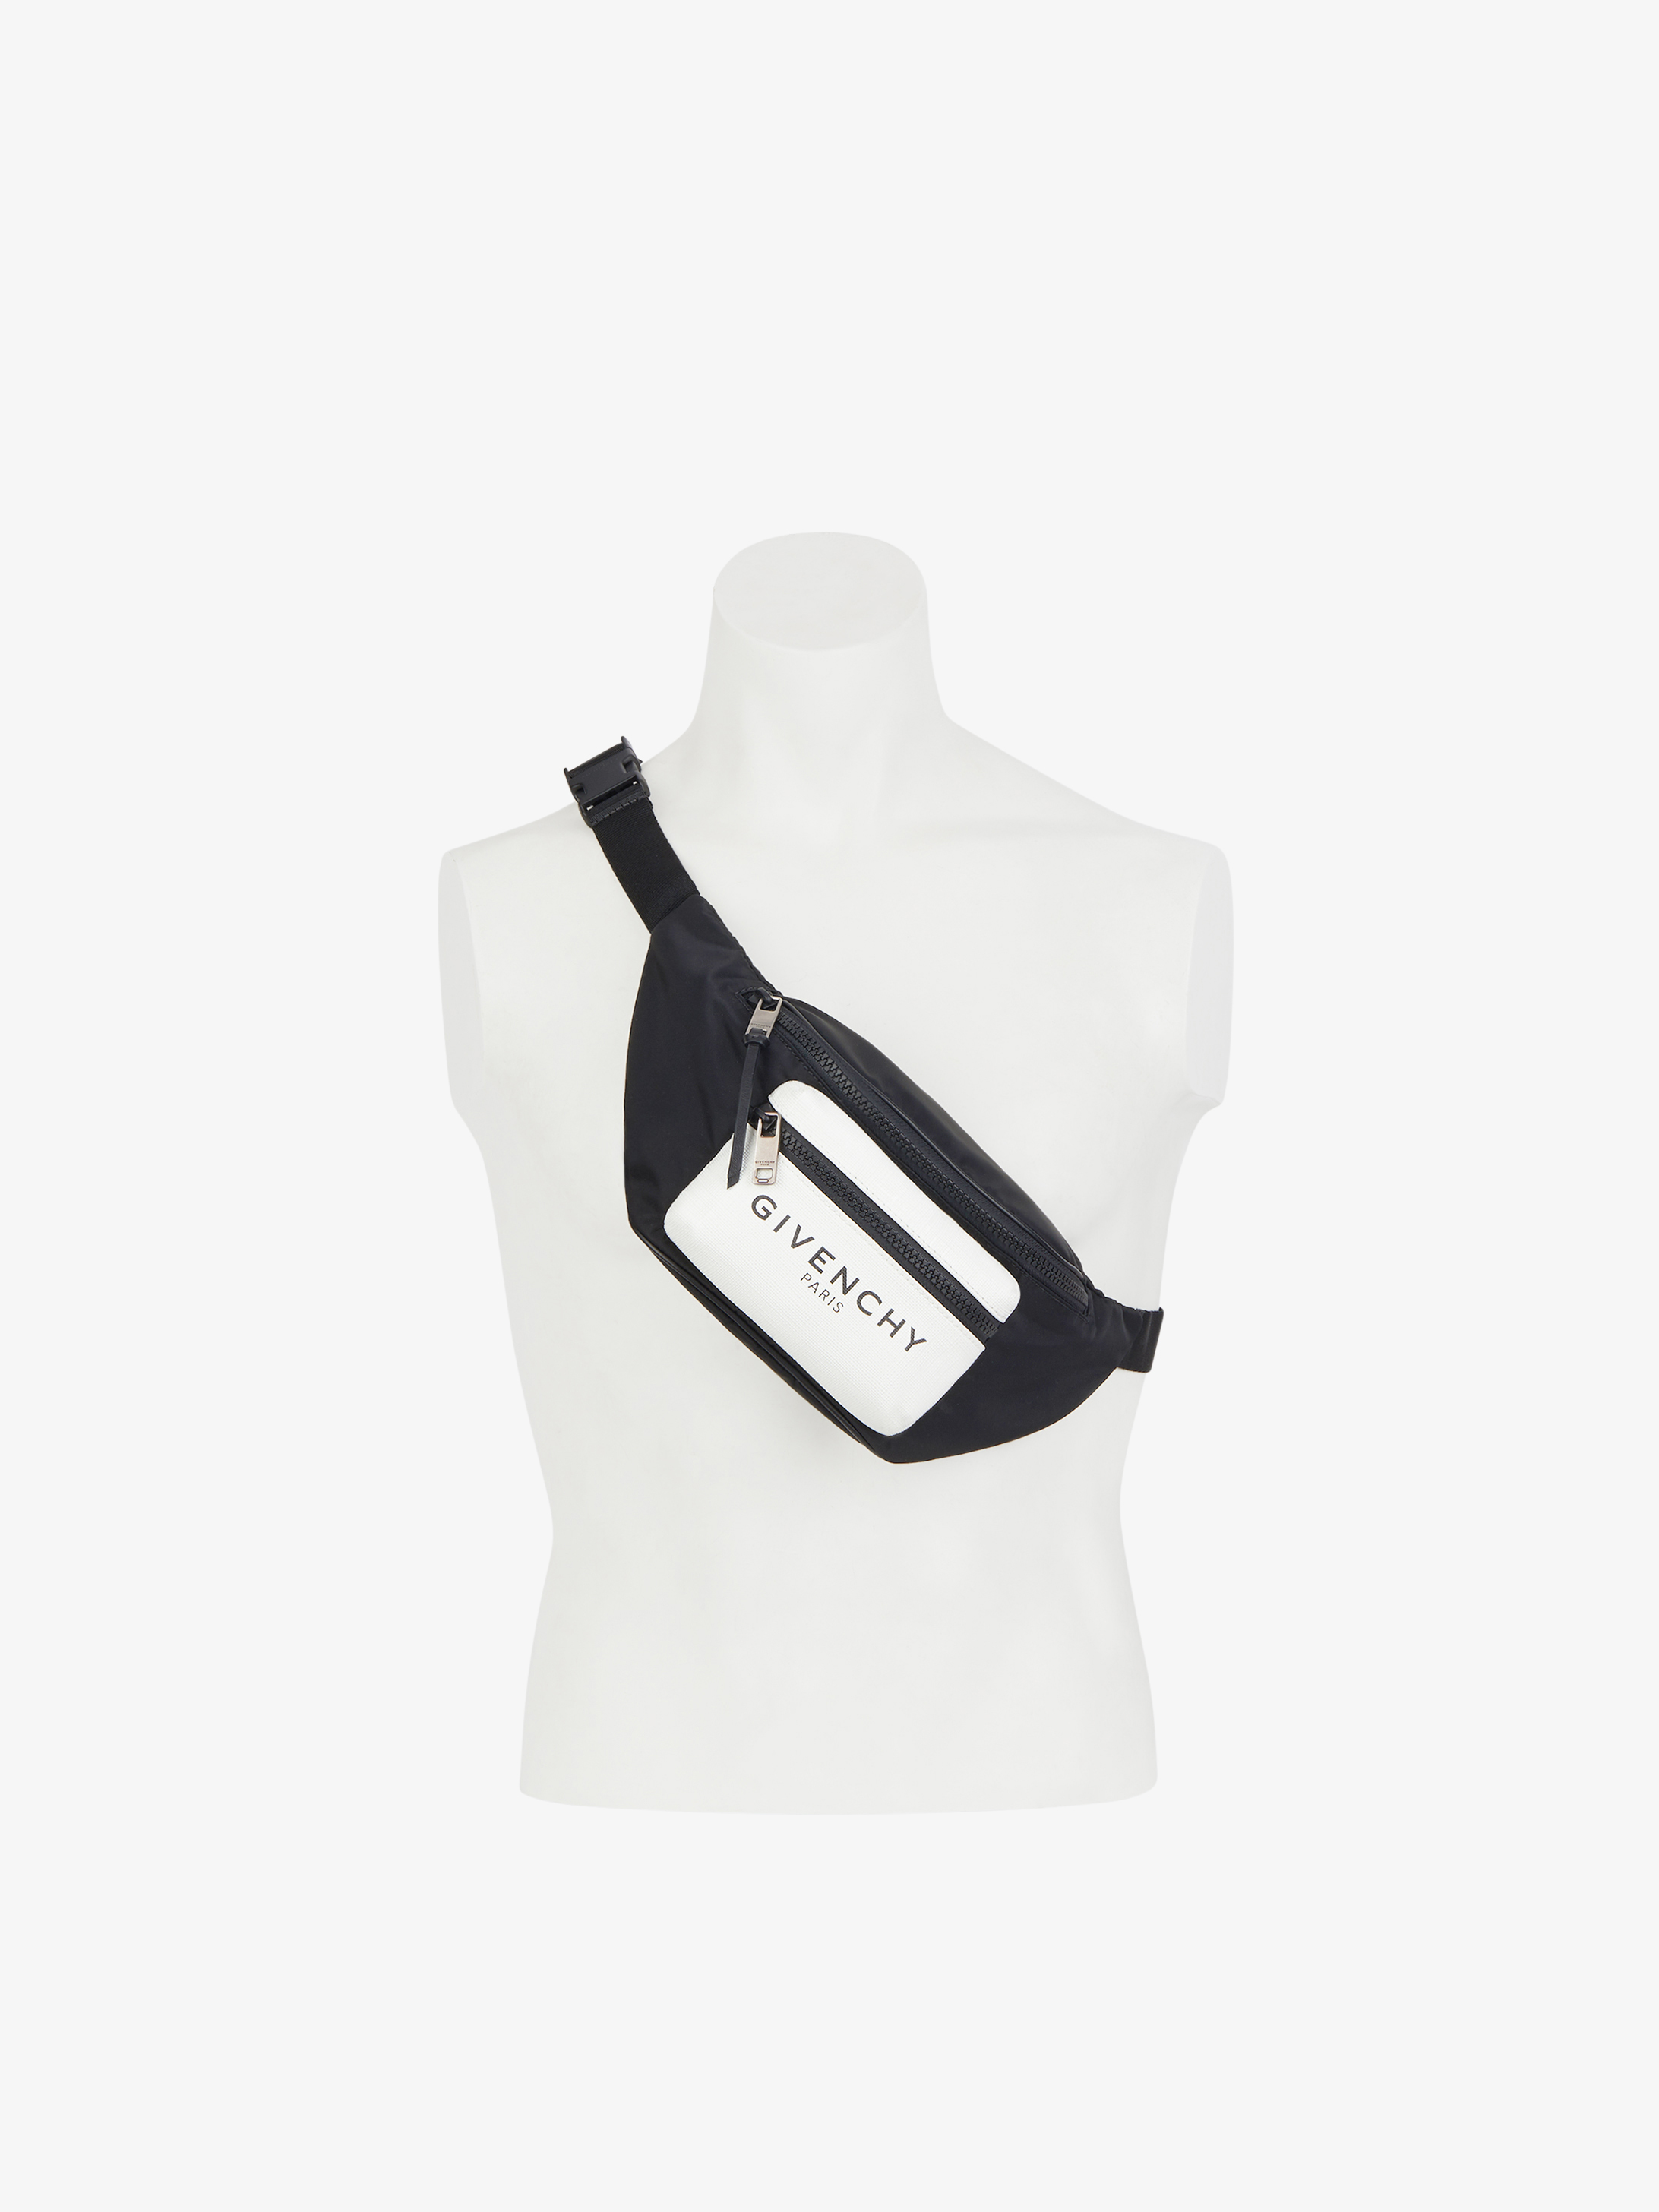 GIVENCHY PARIS bum bag with glow in the dark pocket